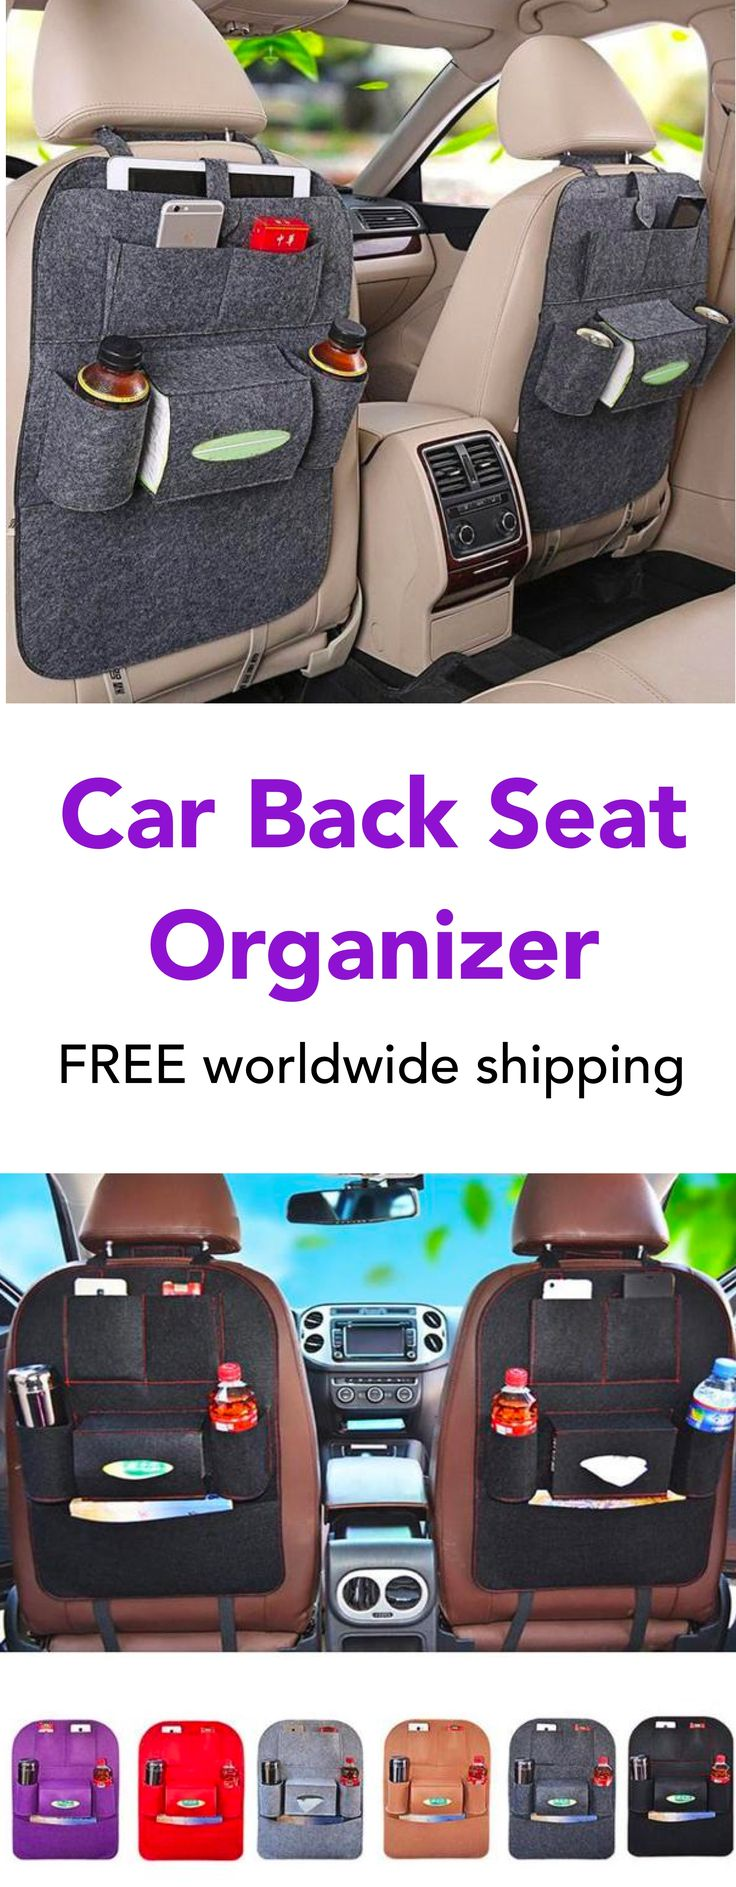 Car Back Seat Organizer (Cool Crafts Products)